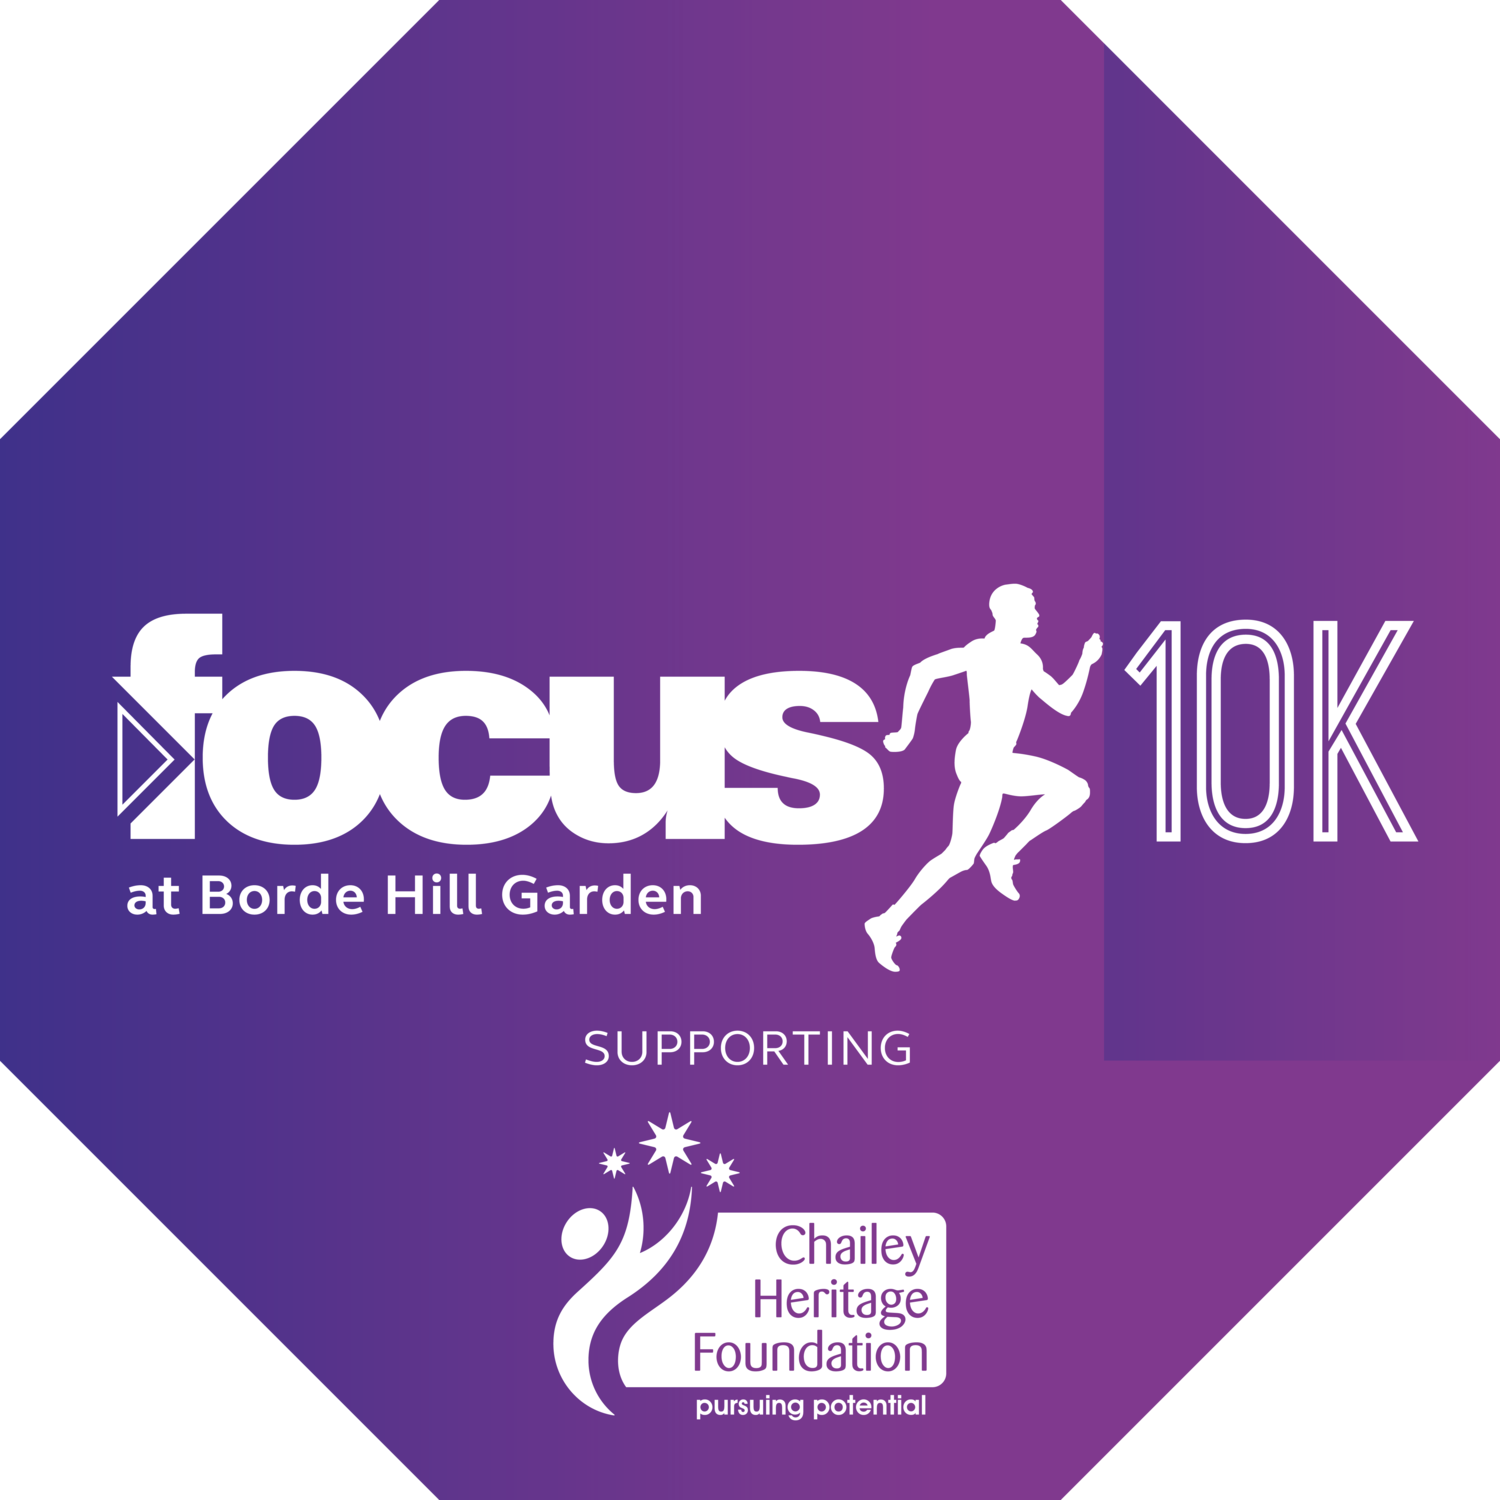 Focus 10K - Borde Hill Garden - 03.06.2018